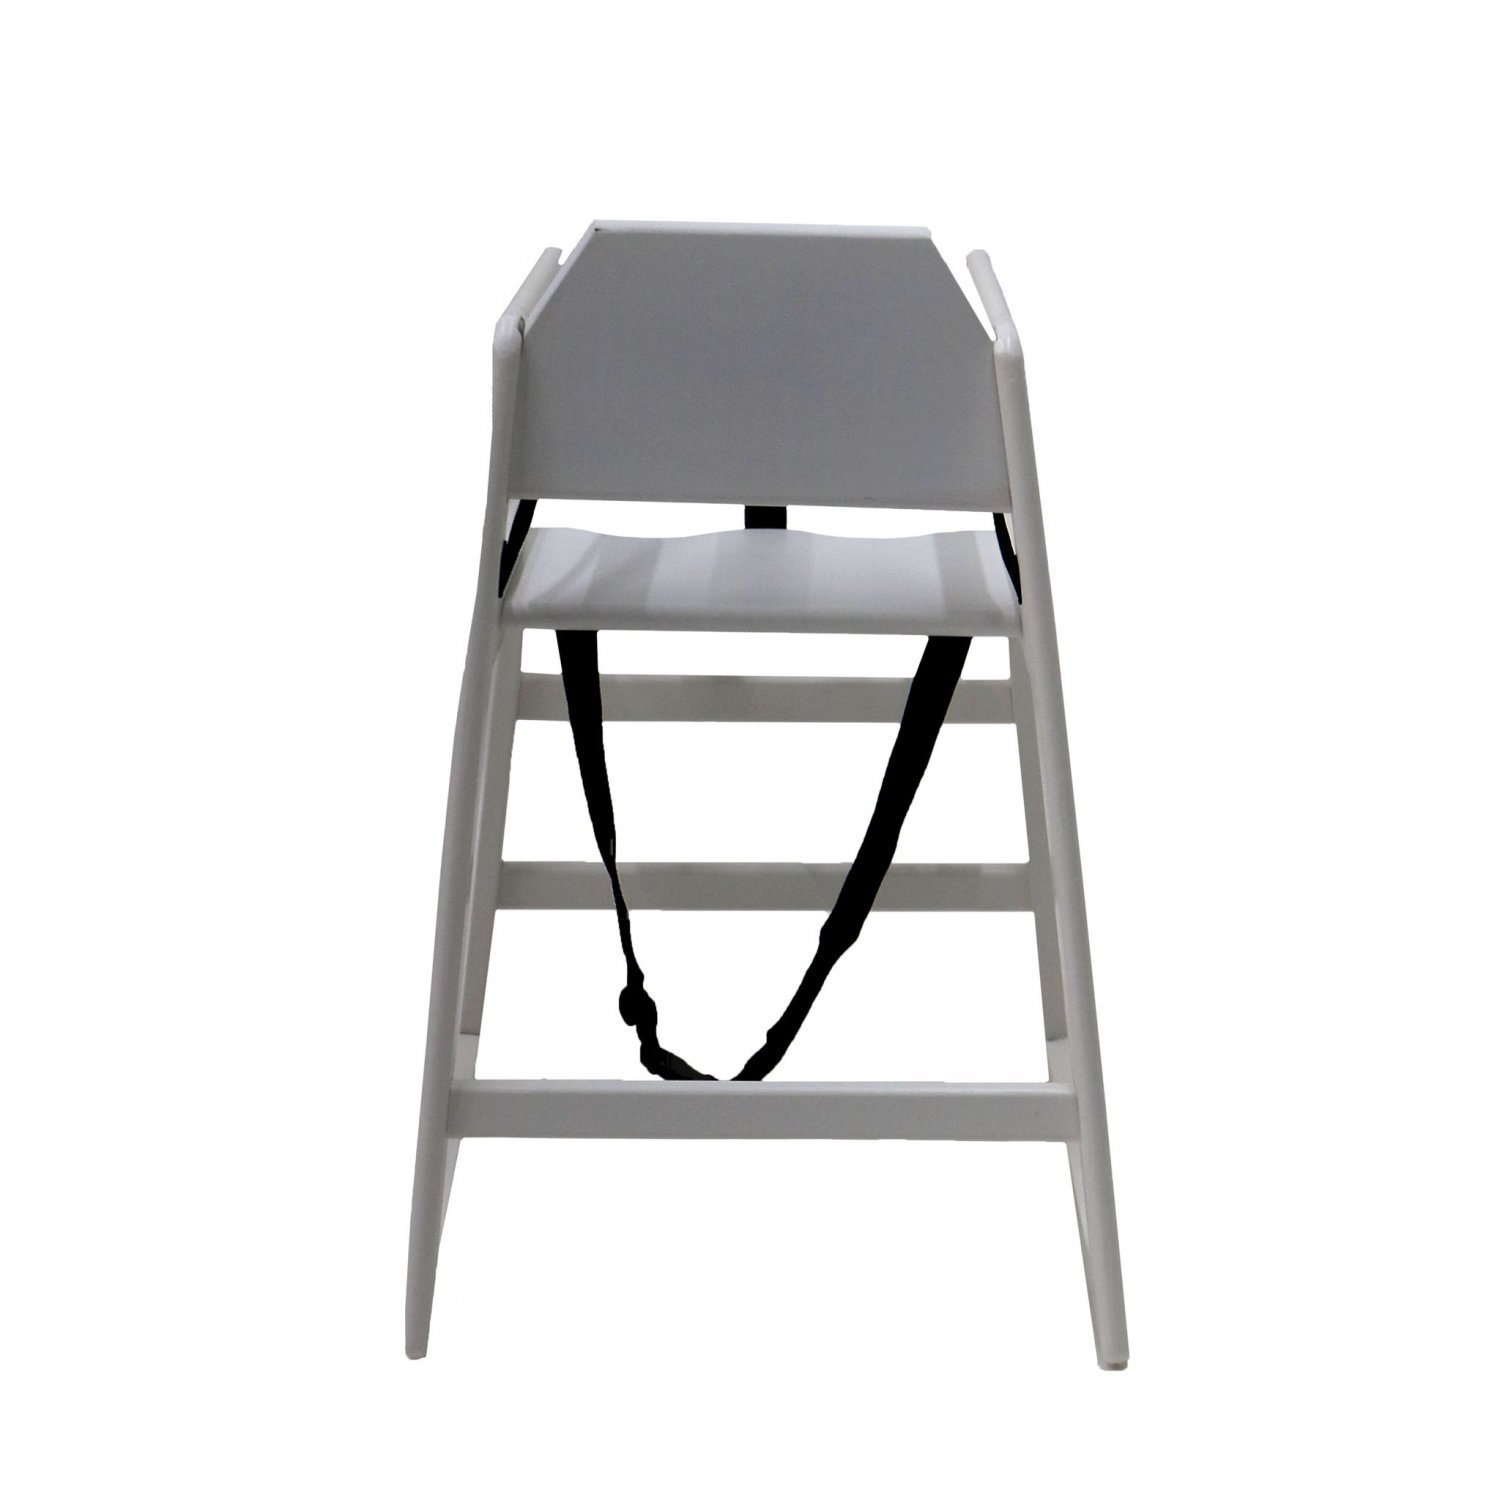 kids high chair wooden frame beach chairs white 24 99 oypla stocking